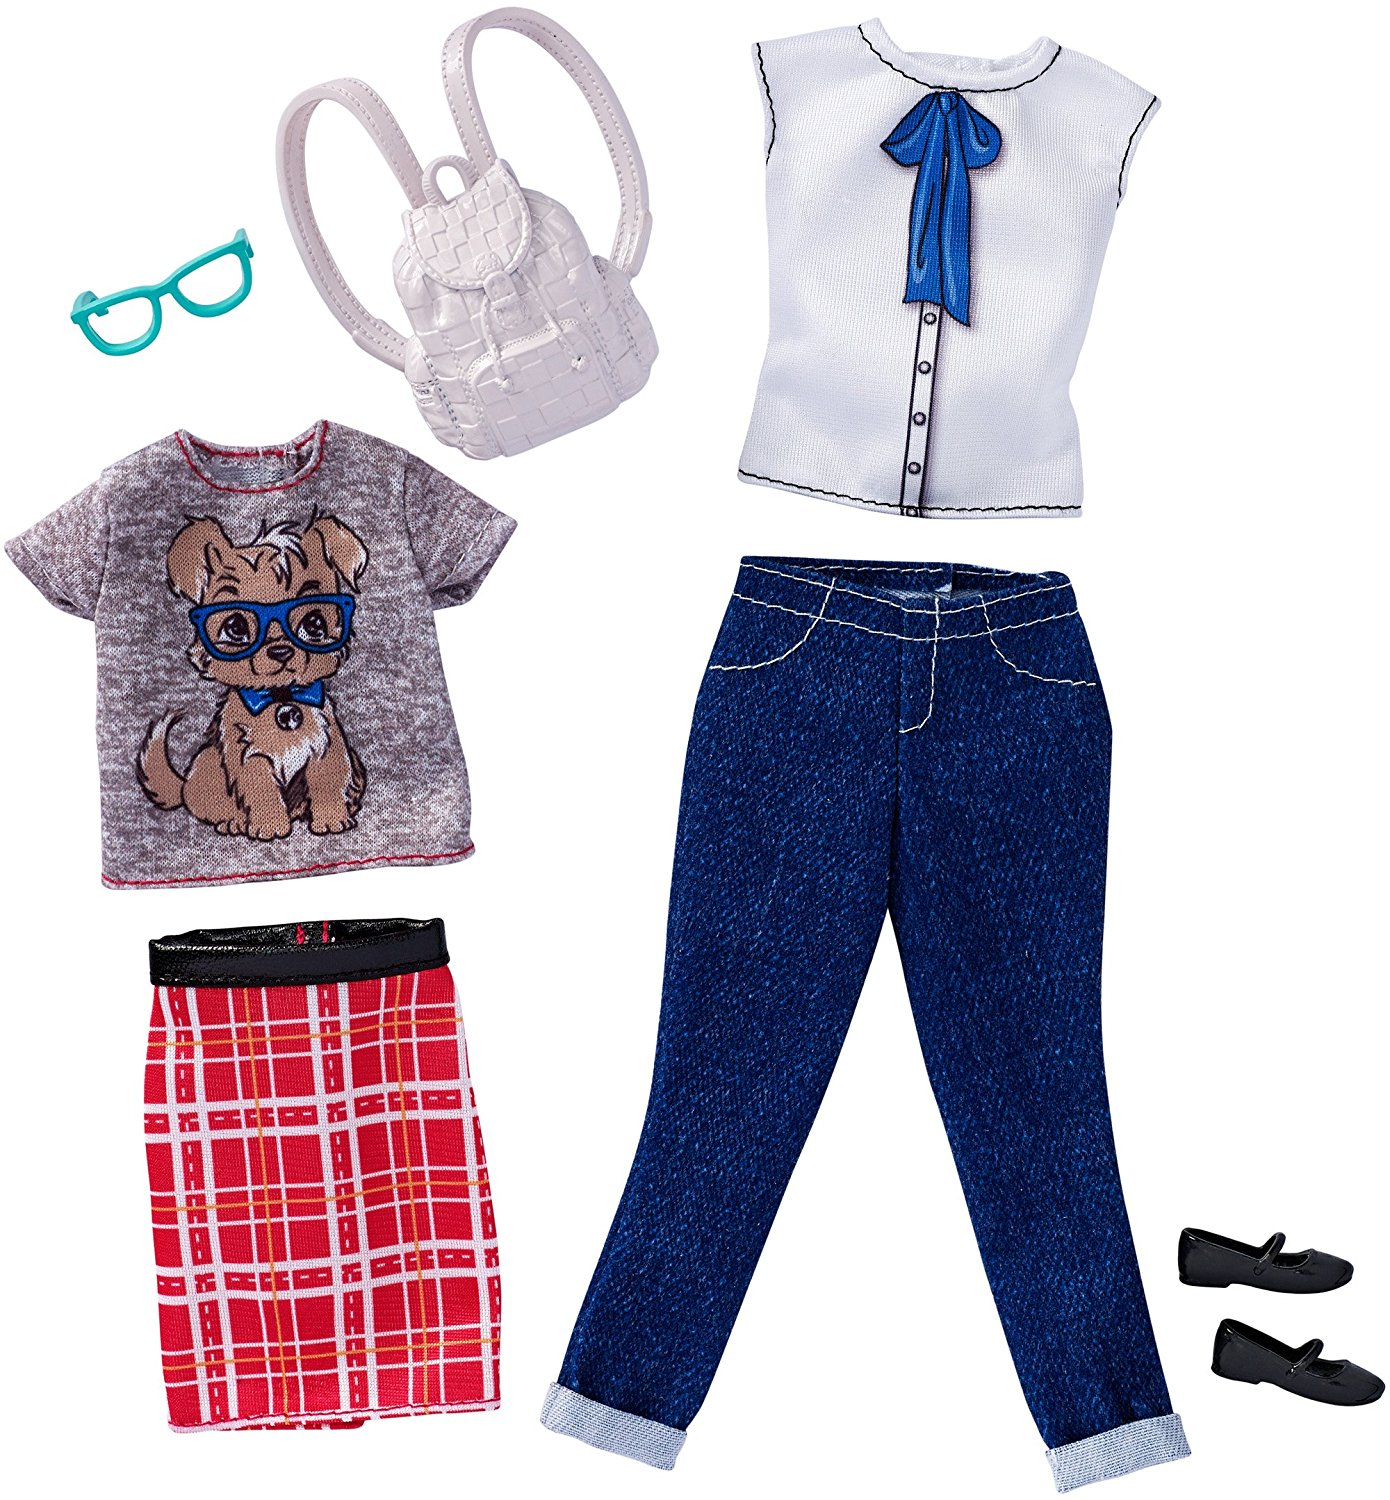 Fashions Geek Chic, 2 Pack - Curvy, Includes two versatil...